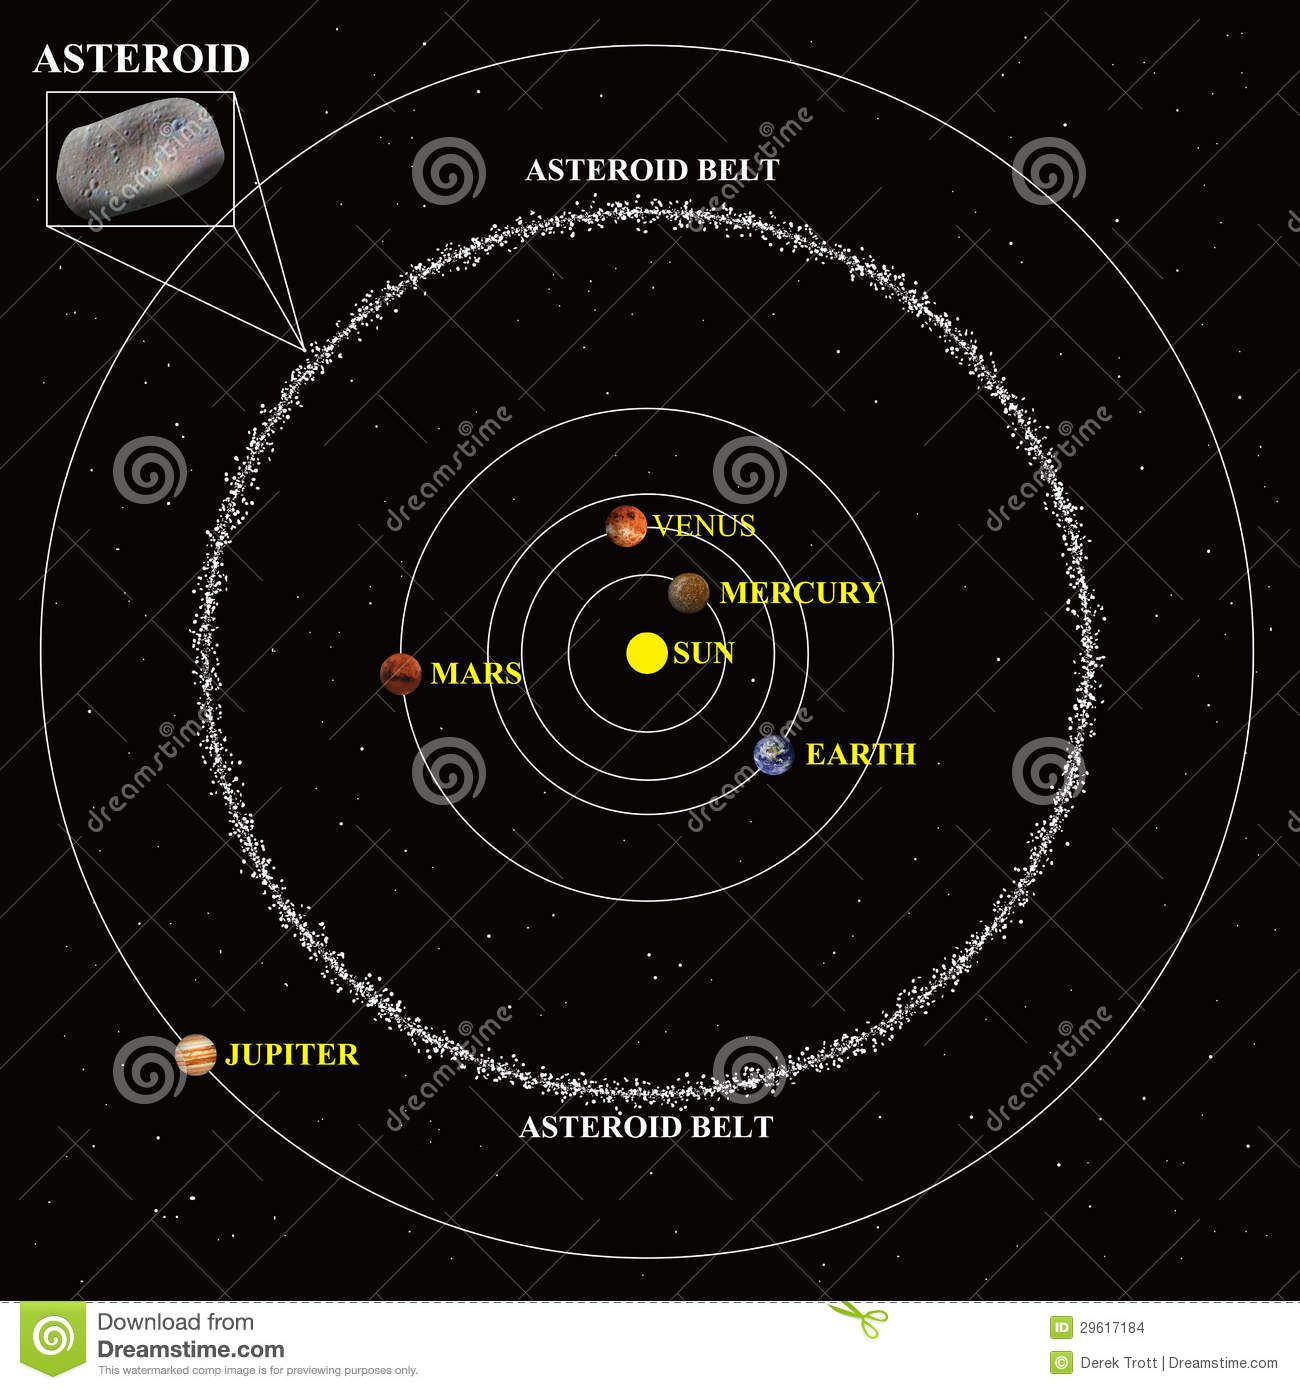 asteroid belt diagram - photo #5